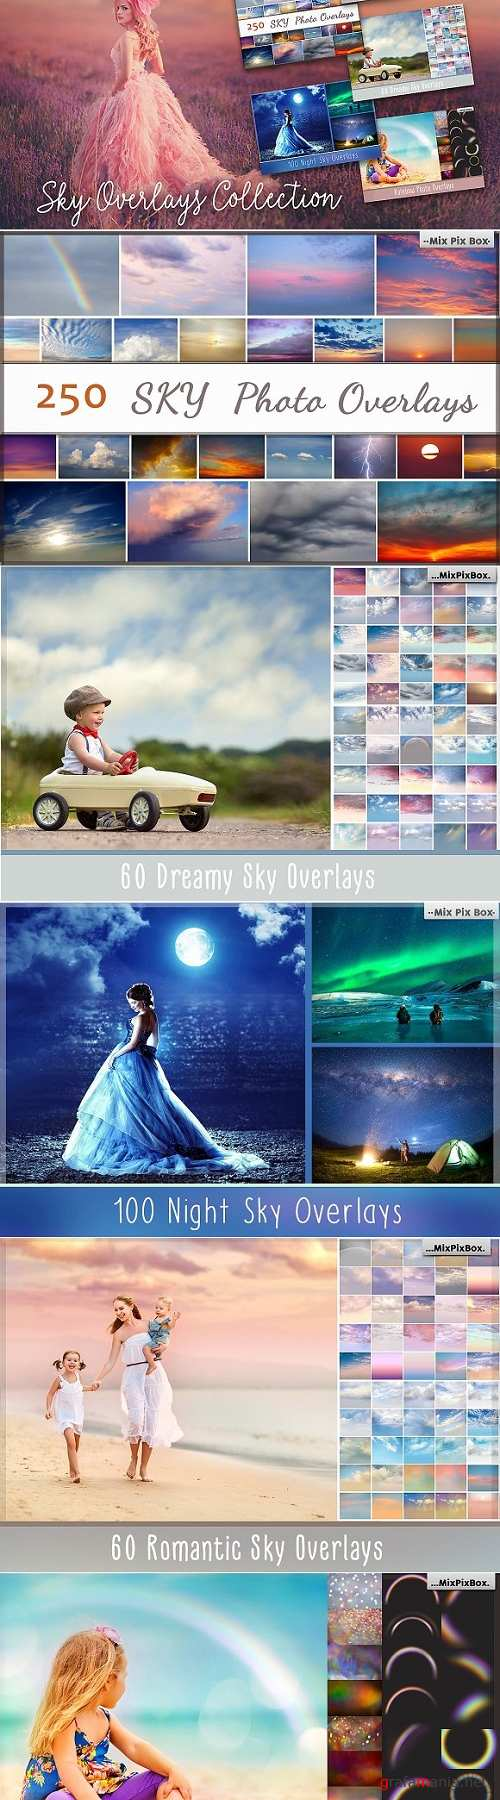 Sky Overlays Collection - 1776584